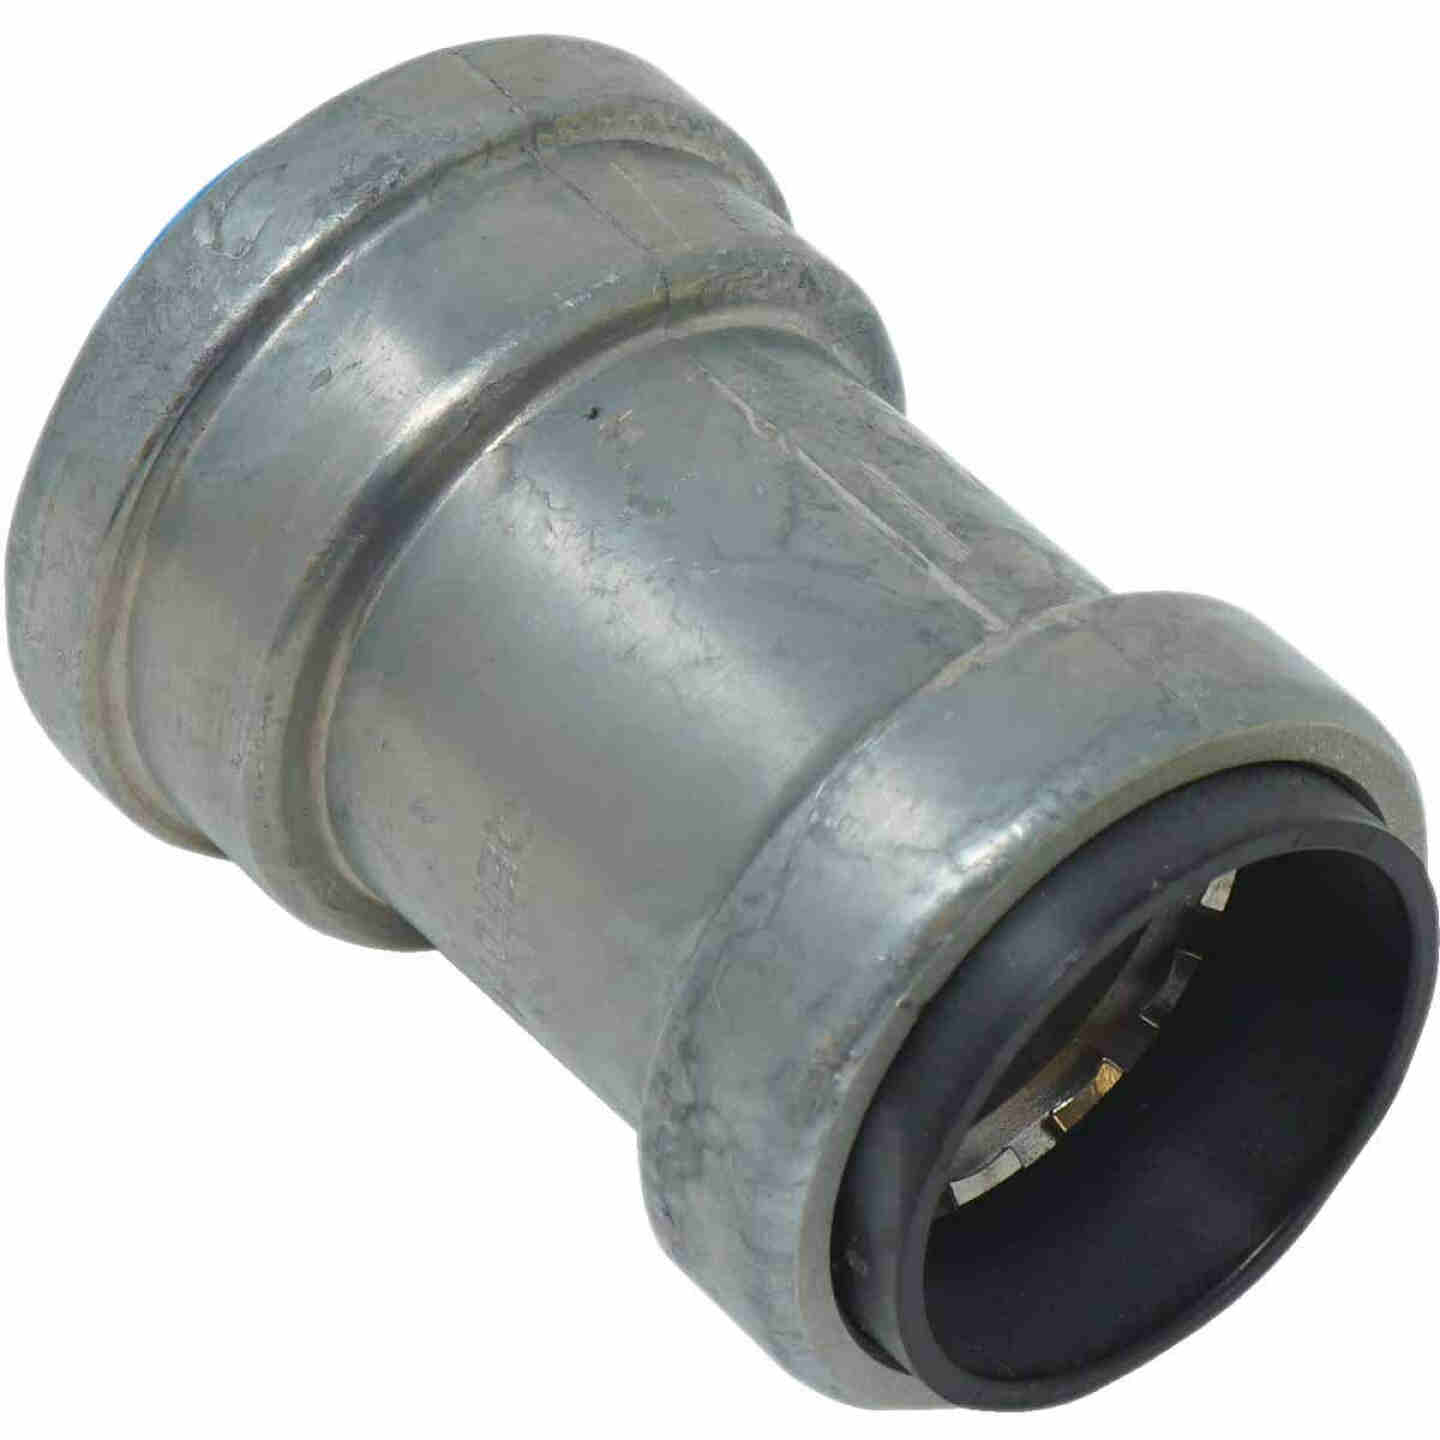 Southwire SimPush 3/4 In. EMT to Liquid Tight Push-To-Install Combination Conduit Coupling Image 1